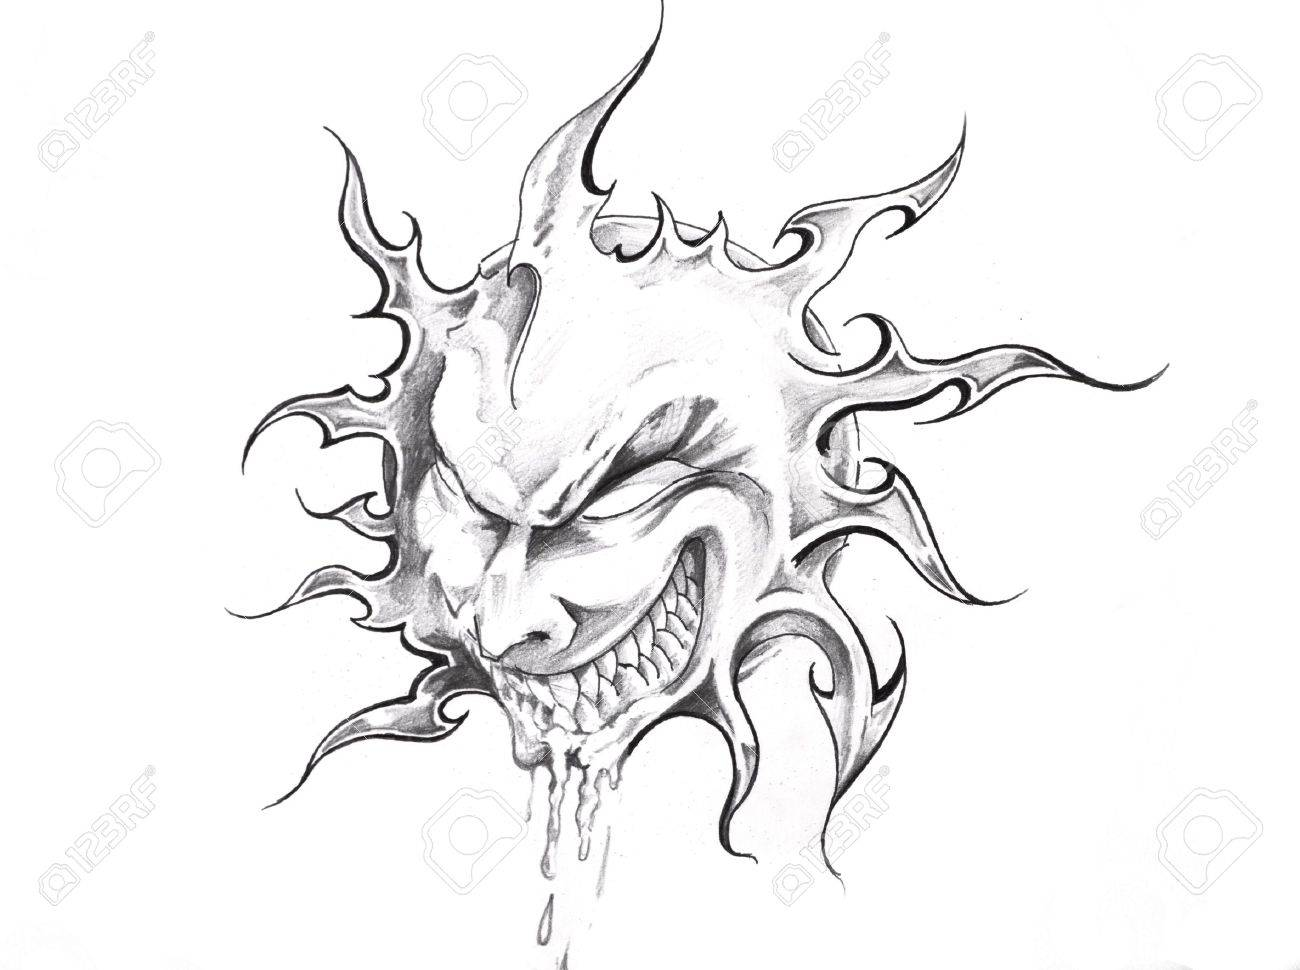 Line Drawing Face Tattoo : Sketch of tattoo art sun with face stock photo picture and